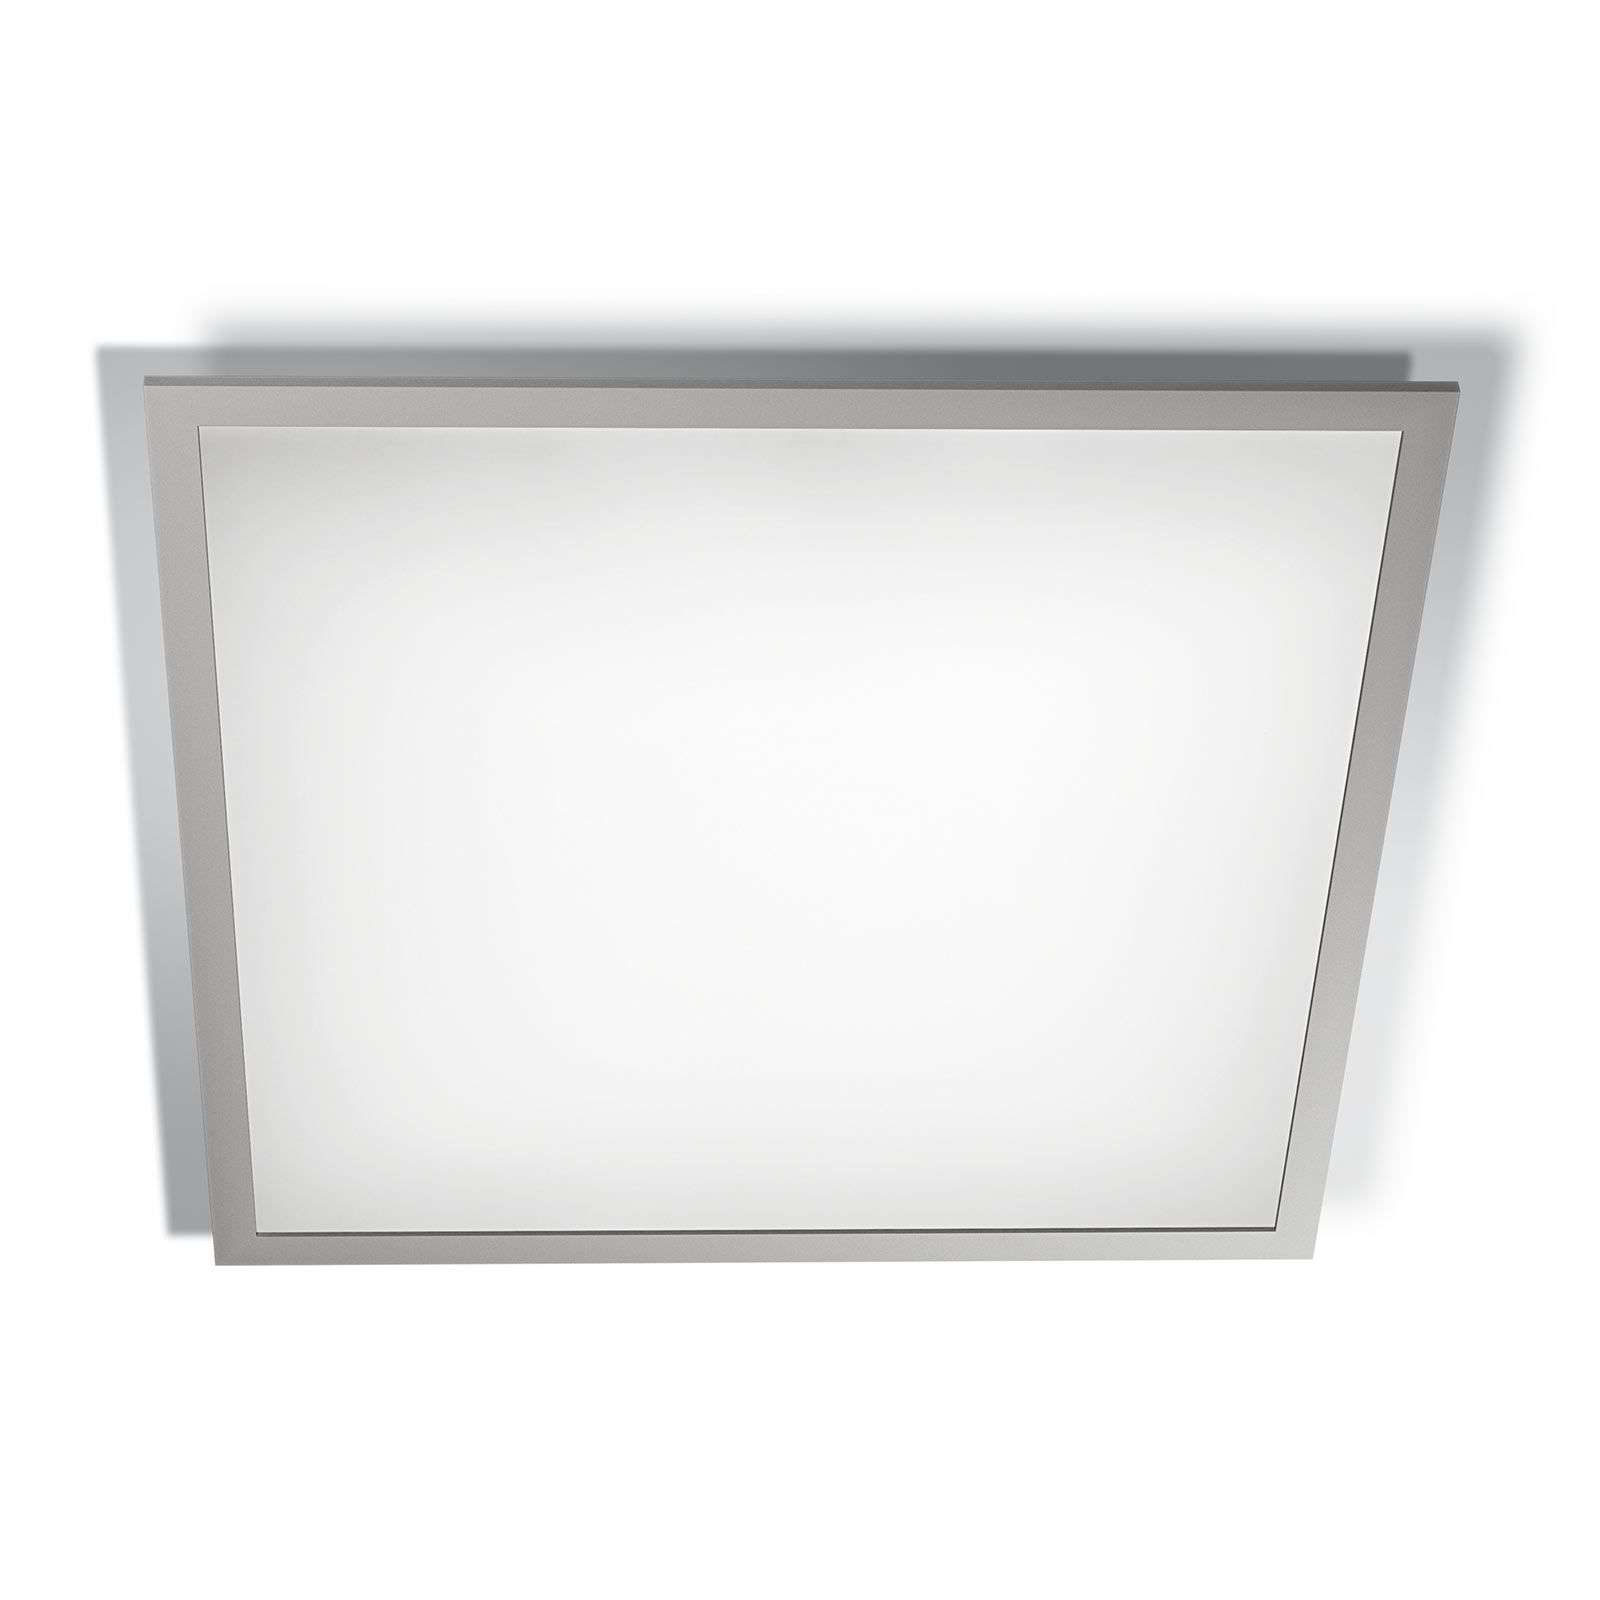 LEDVANCE Planon Plus panel LED 60 cm 840 36W